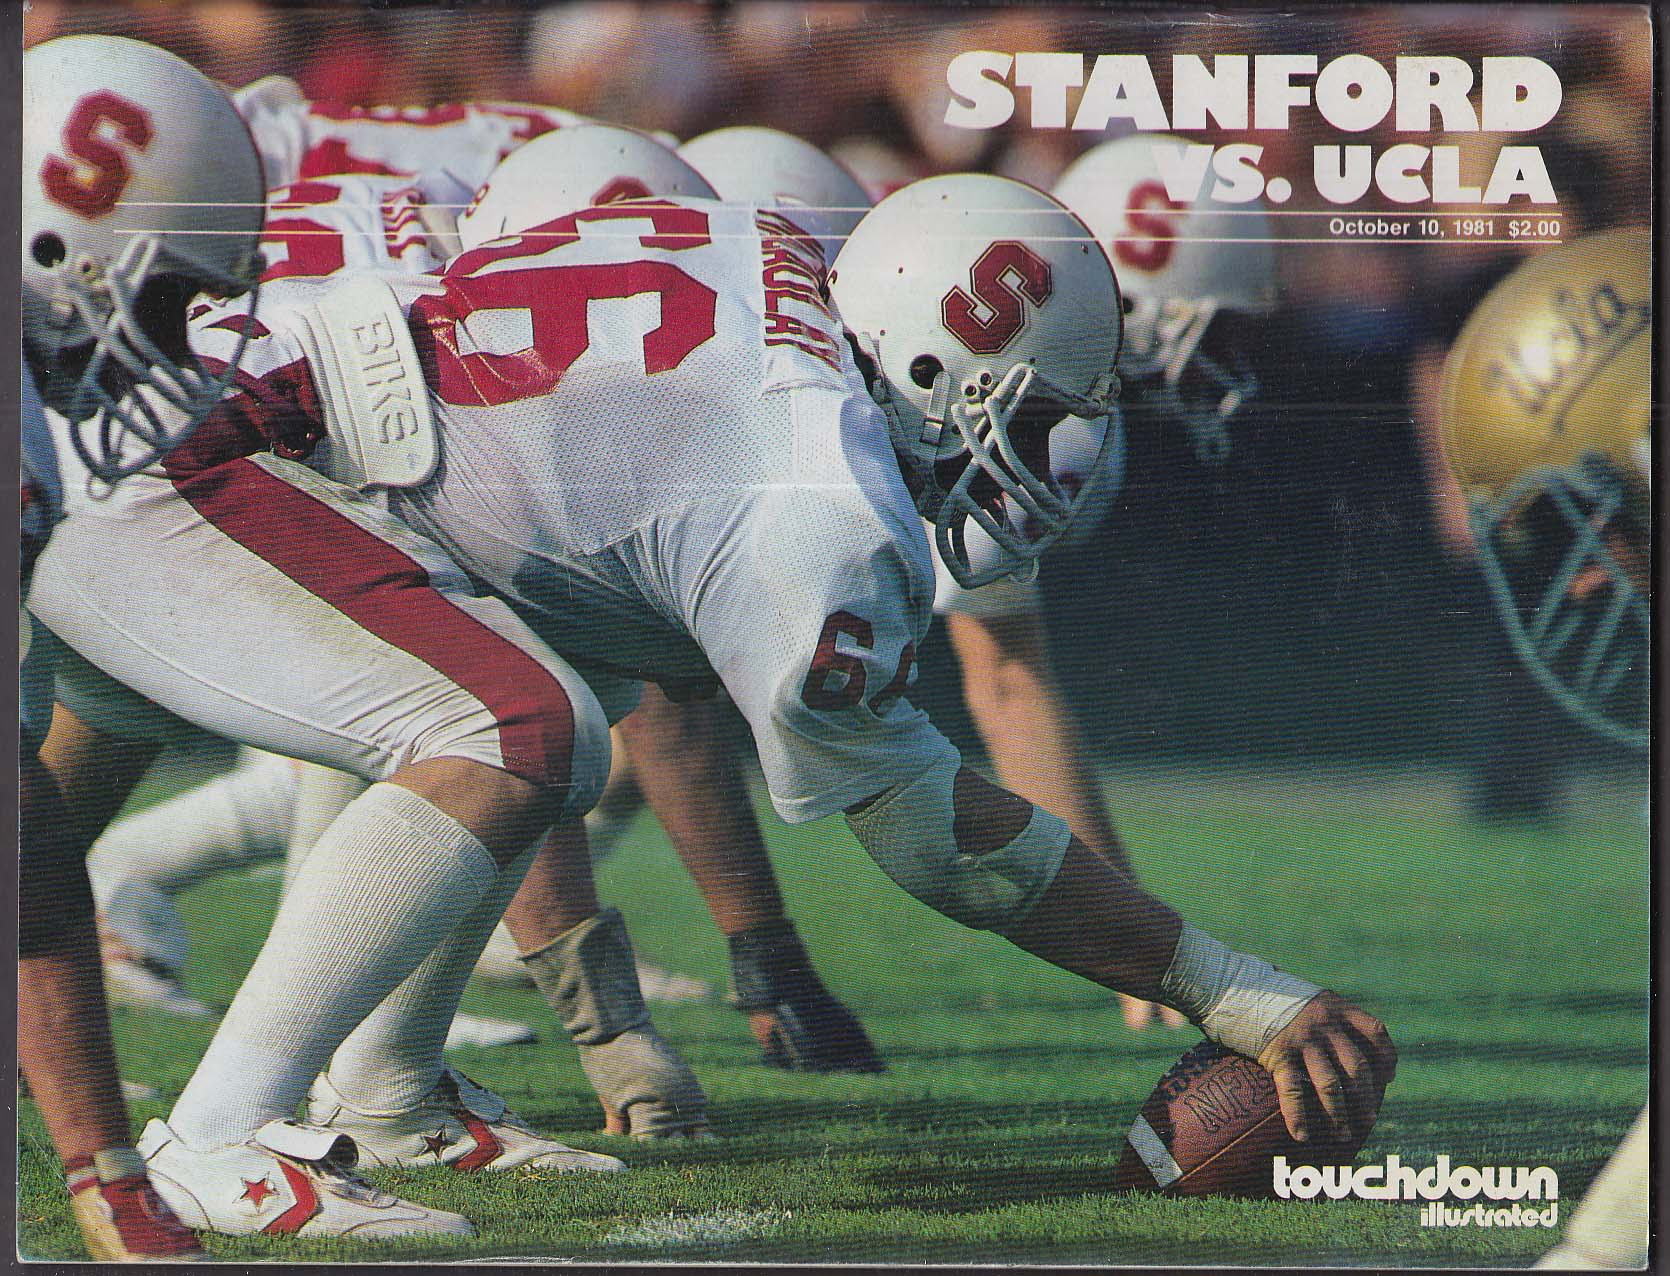 TOUCHDOWN ILLUSTRATED Stanford vs UCLA 10/10 1981